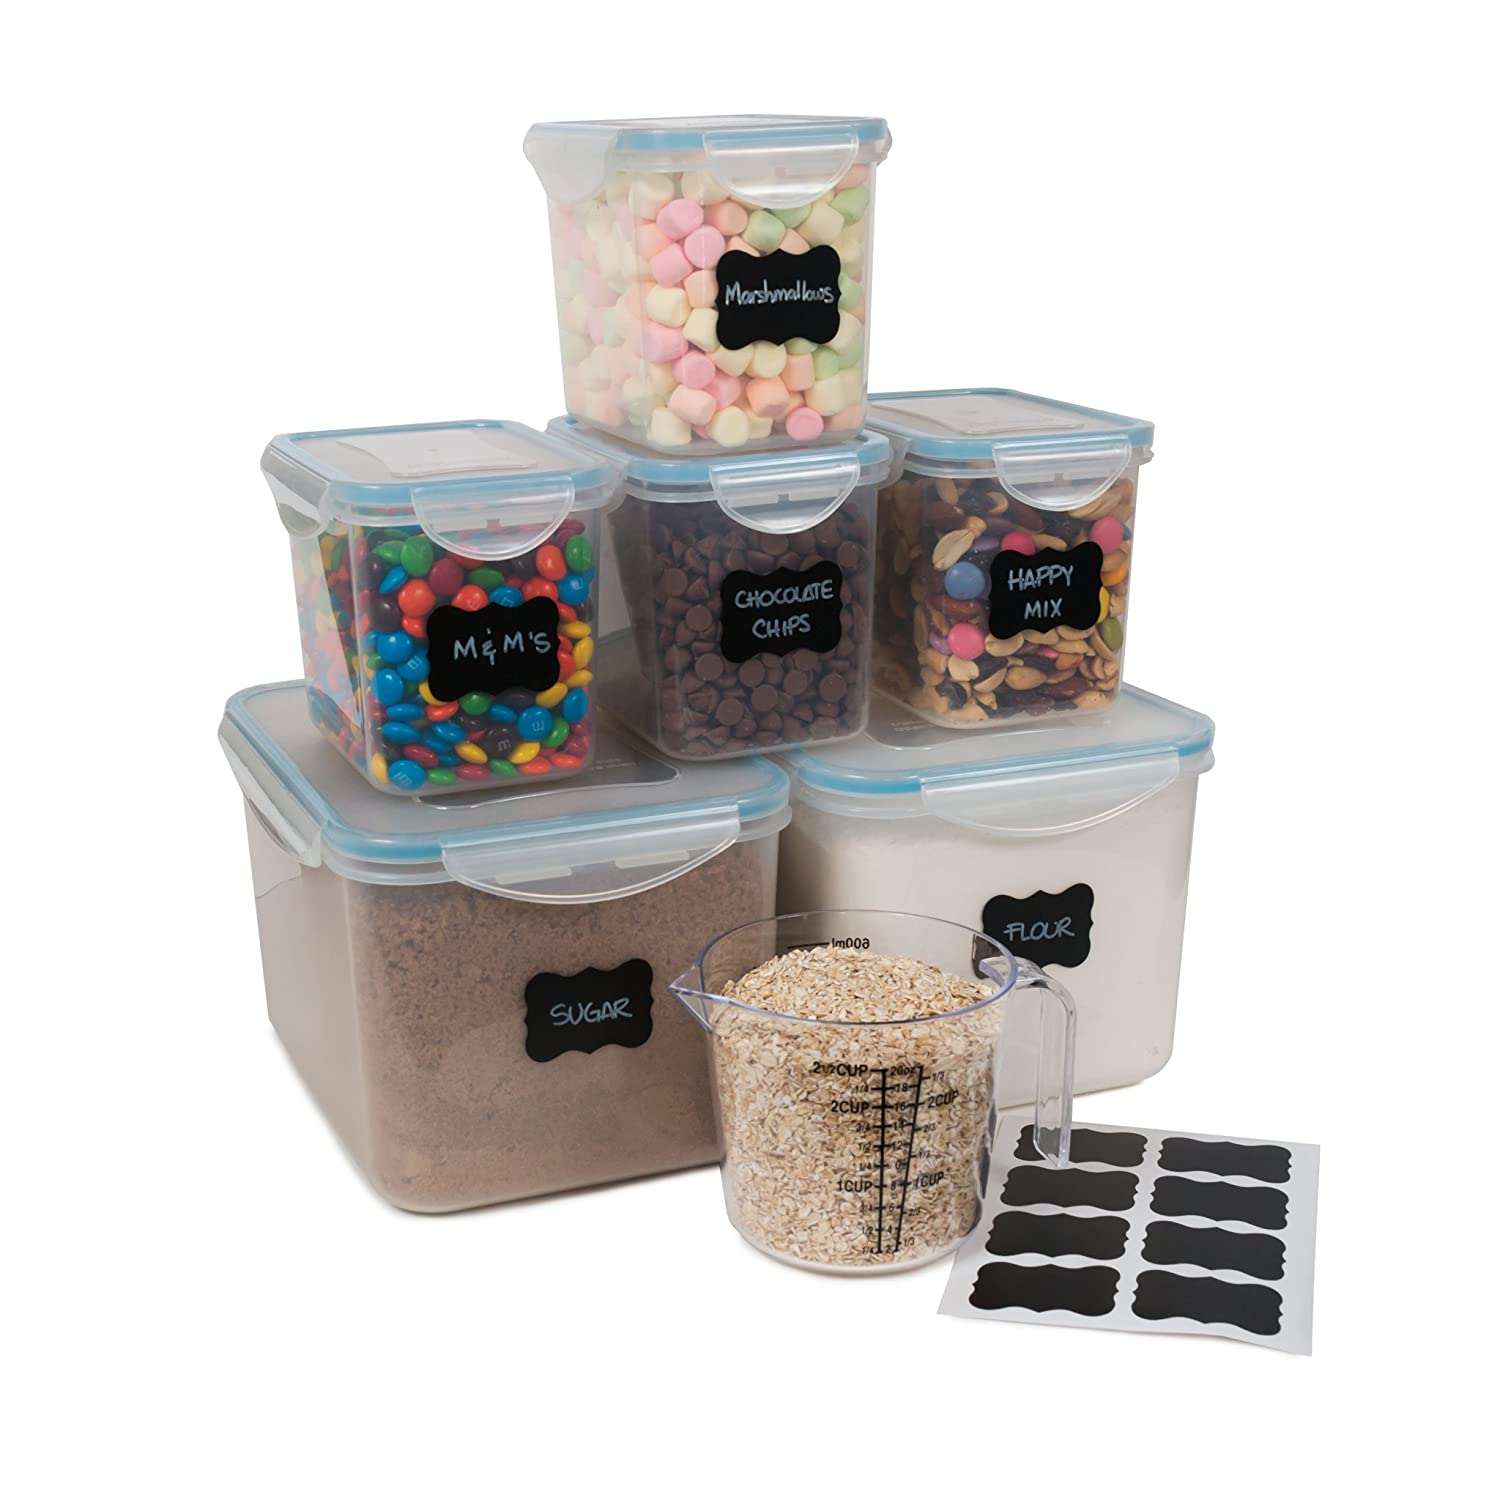 Gabmi Airtight Large Food Storage Containers - Set of 6 - Ideal for Flour, Sugar, Baking Supplies - Bulk Pantry Food Storage & Kitchen Container - Bonus 2 ½ Measuring Cup & 8 Chalkboard Stickers